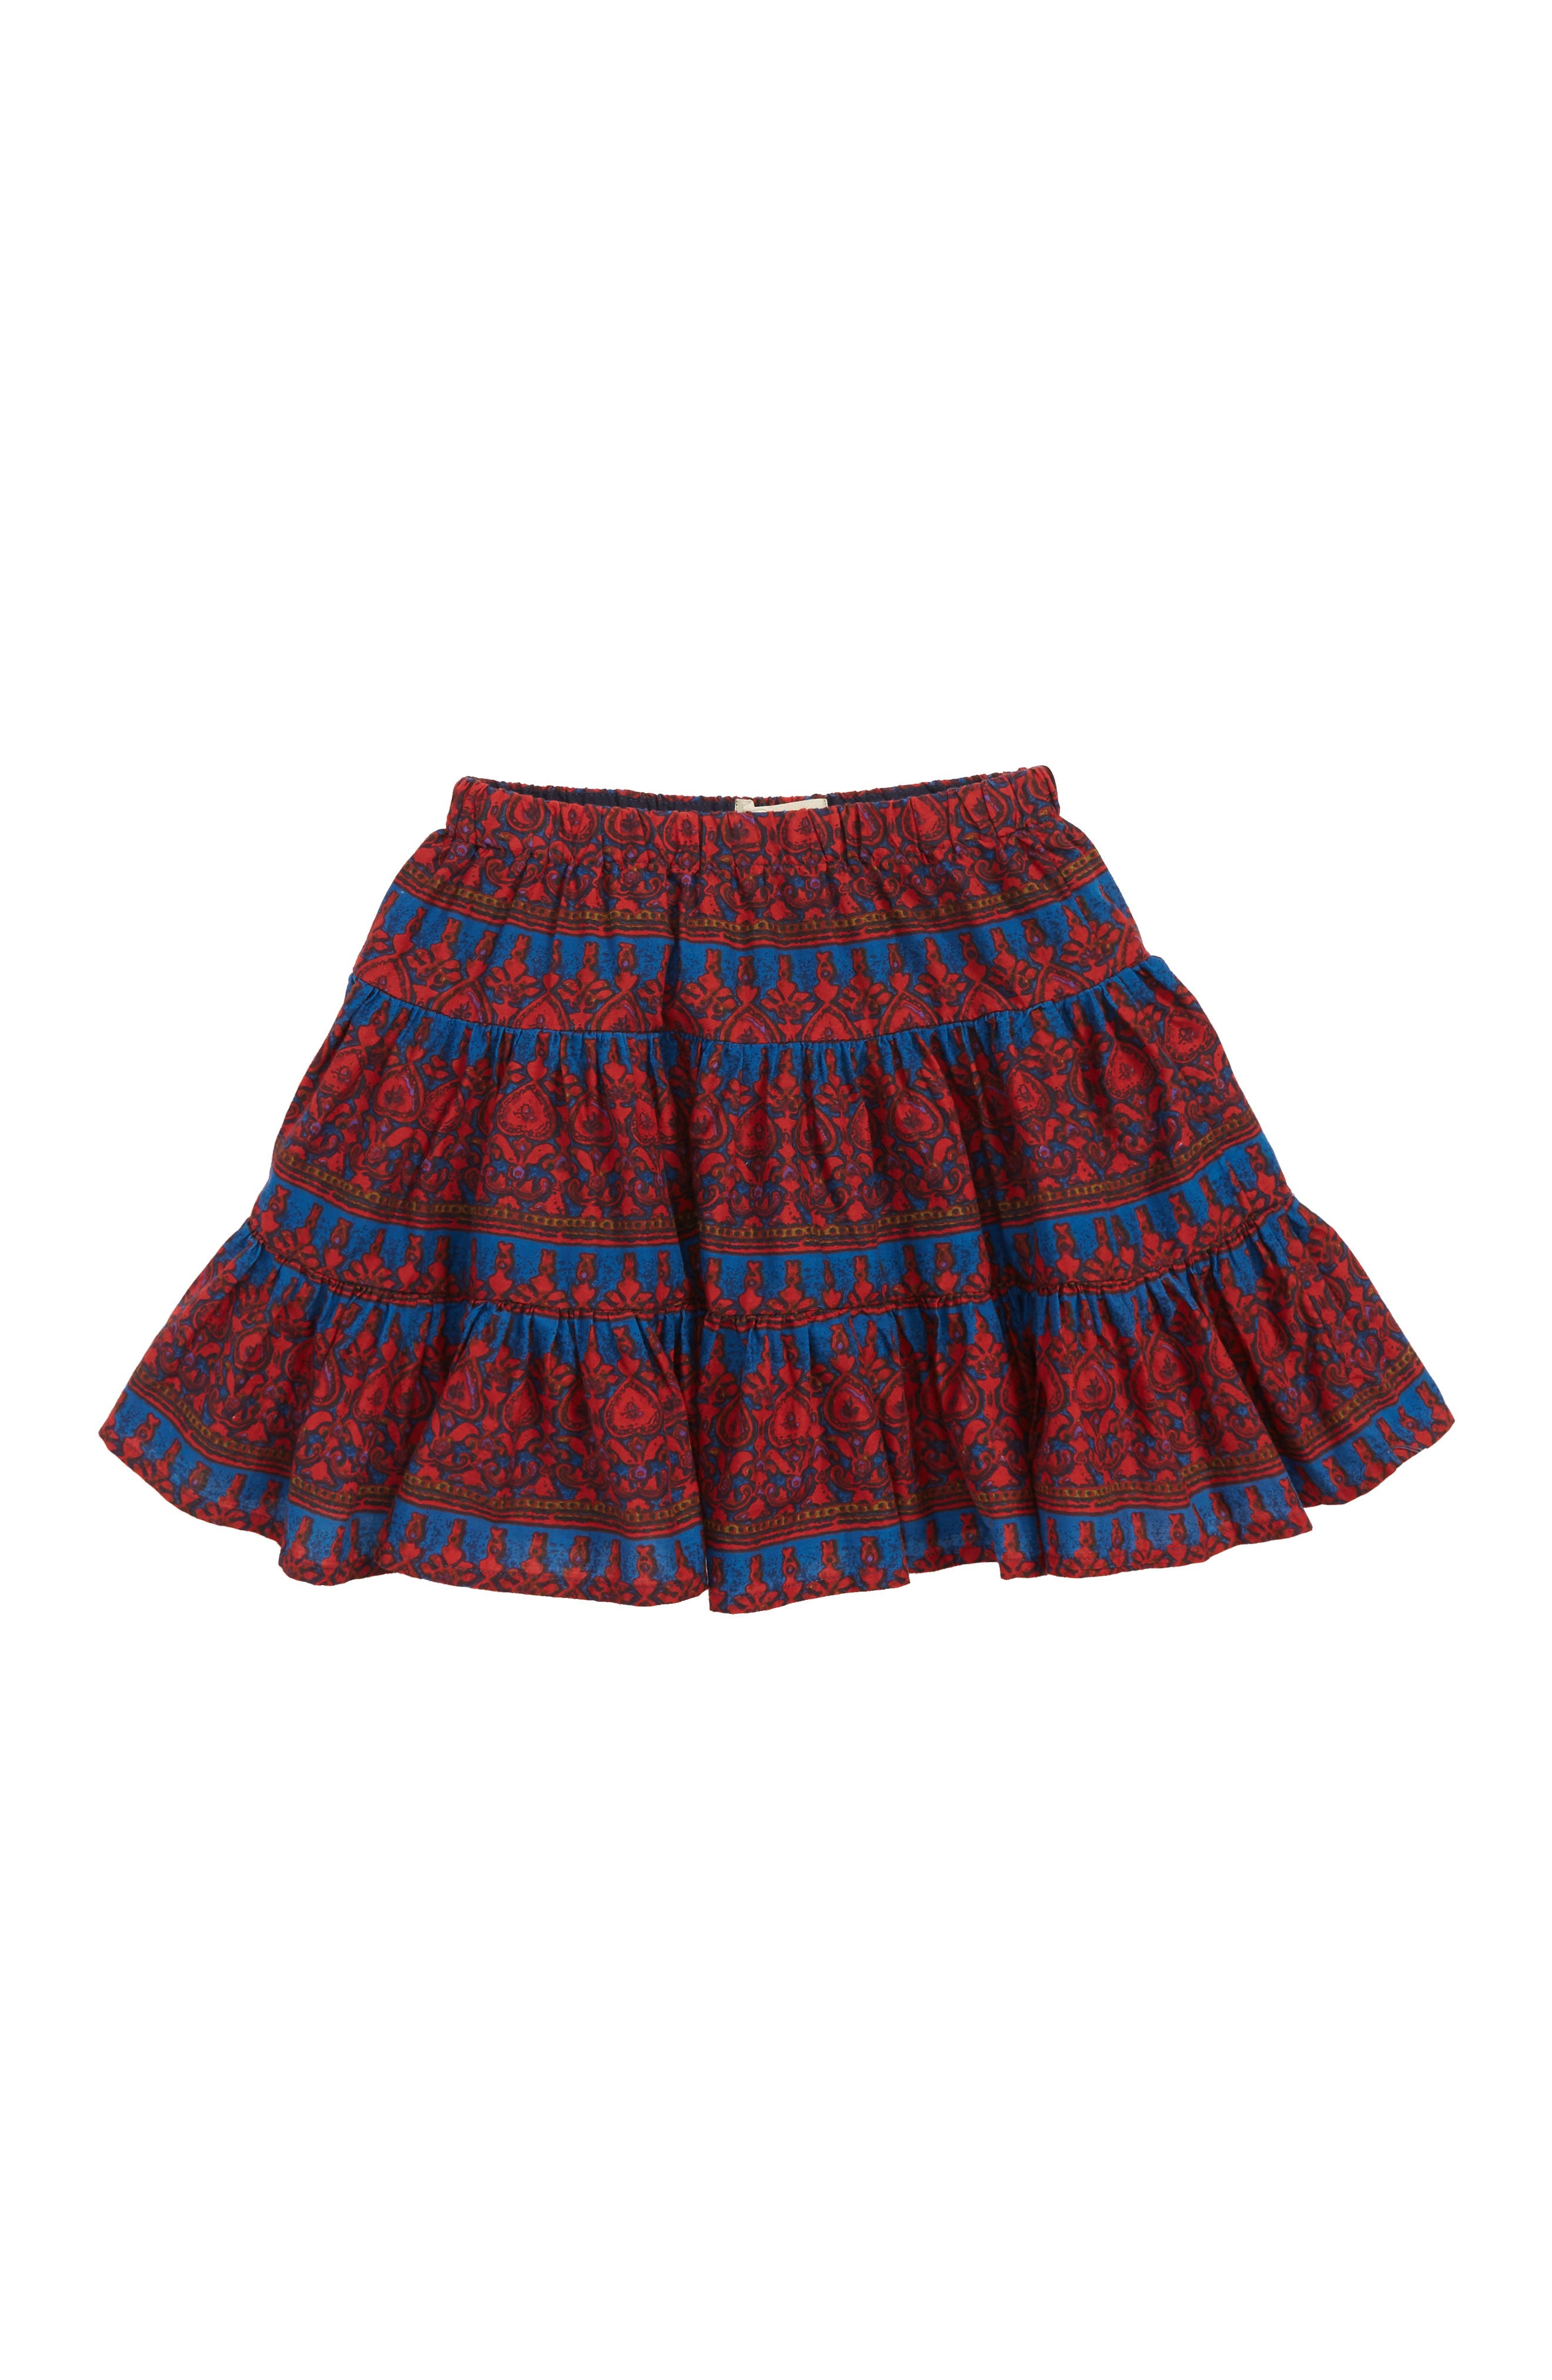 Peek Nicole Skirt,                             Main thumbnail 1, color,                             410